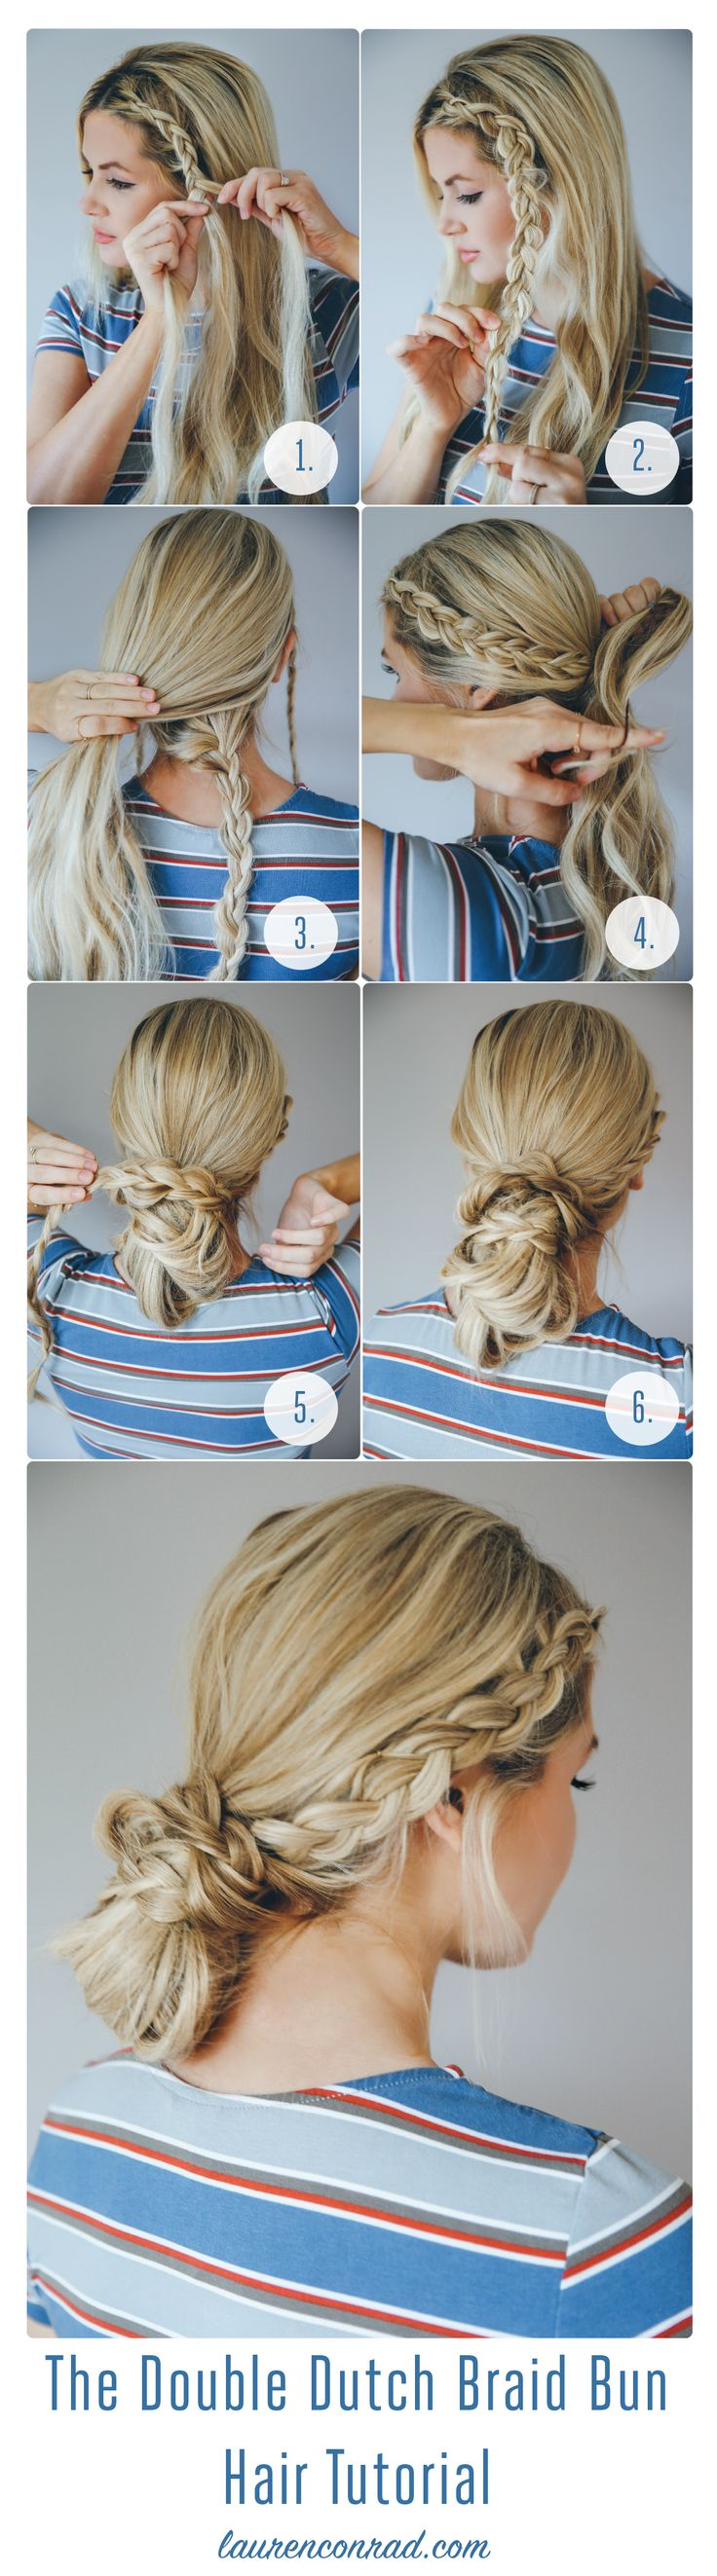 How-To: The Double Dutch Braid Bun